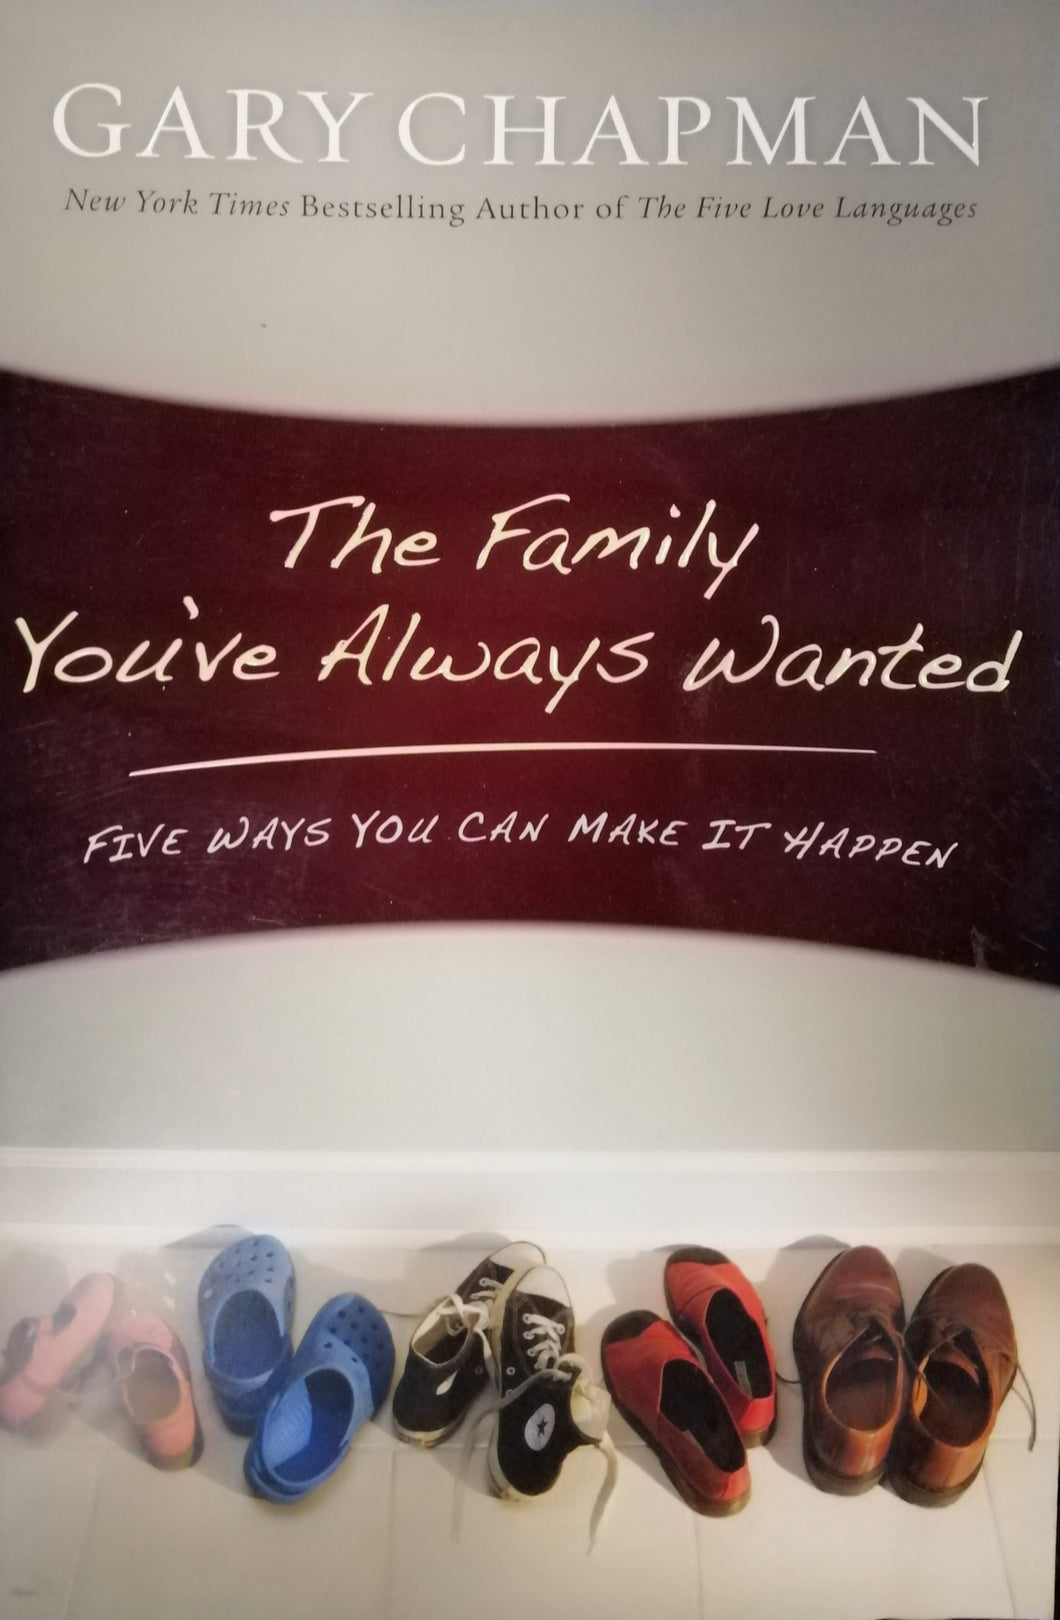 The family you've always wanted by: Gary Chapman